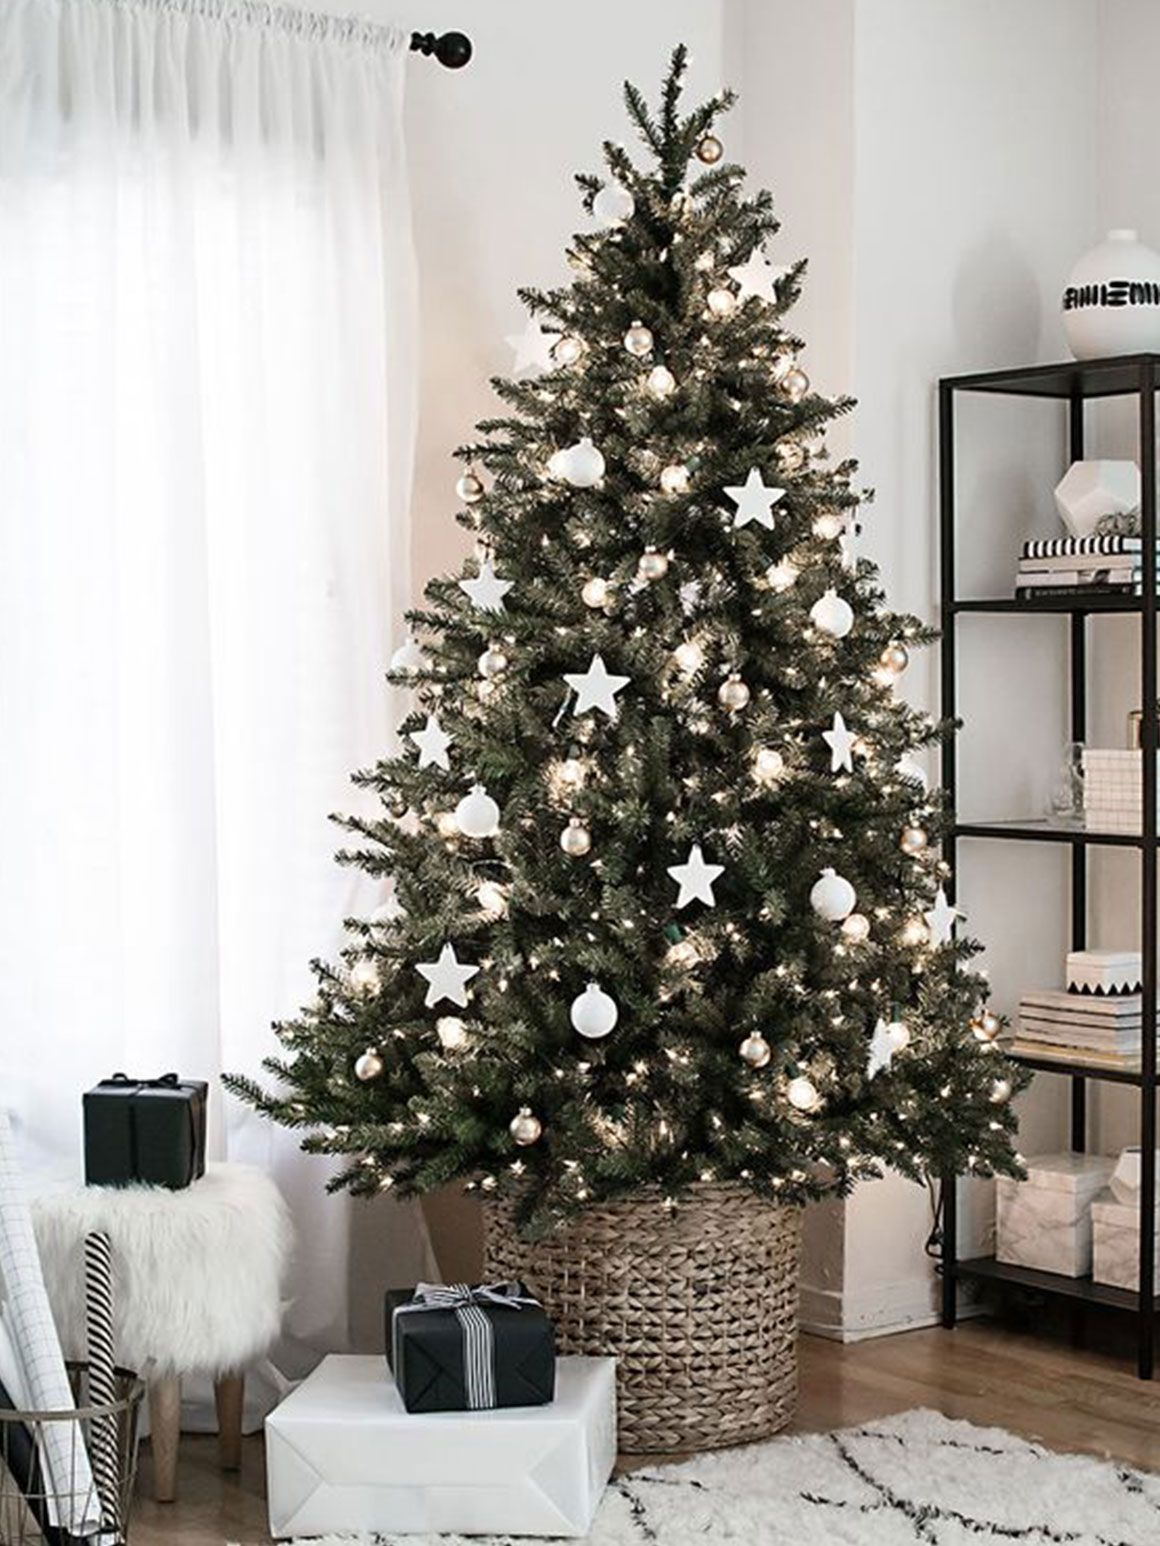 decoratie idee n voor kerst 2016 interieur inspiratie pinterest weihnachten deko. Black Bedroom Furniture Sets. Home Design Ideas